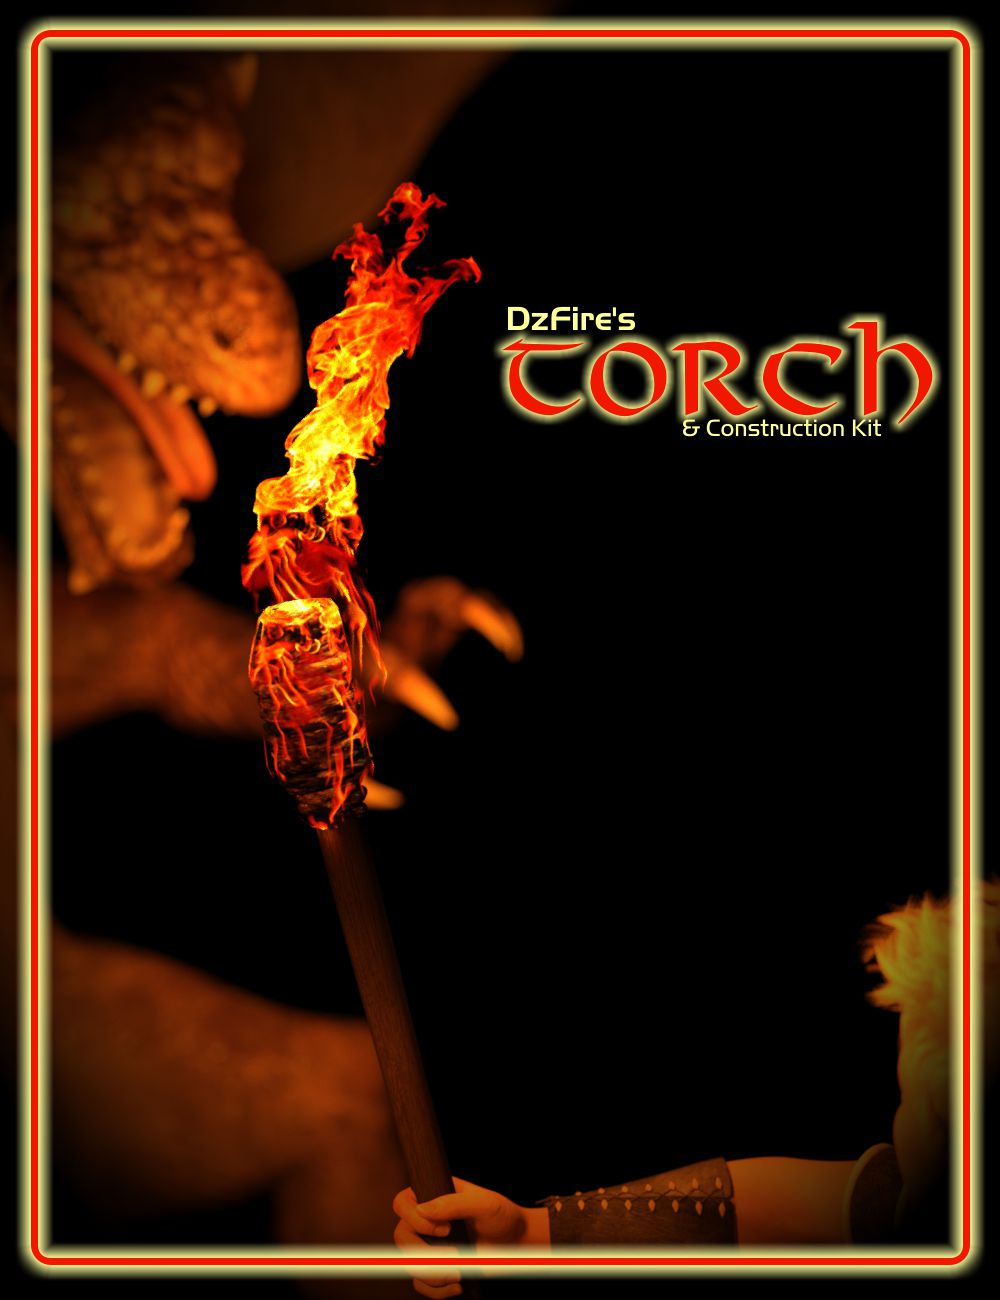 The Torch and Construction Kit by: DzFire, 3D Models by Daz 3D